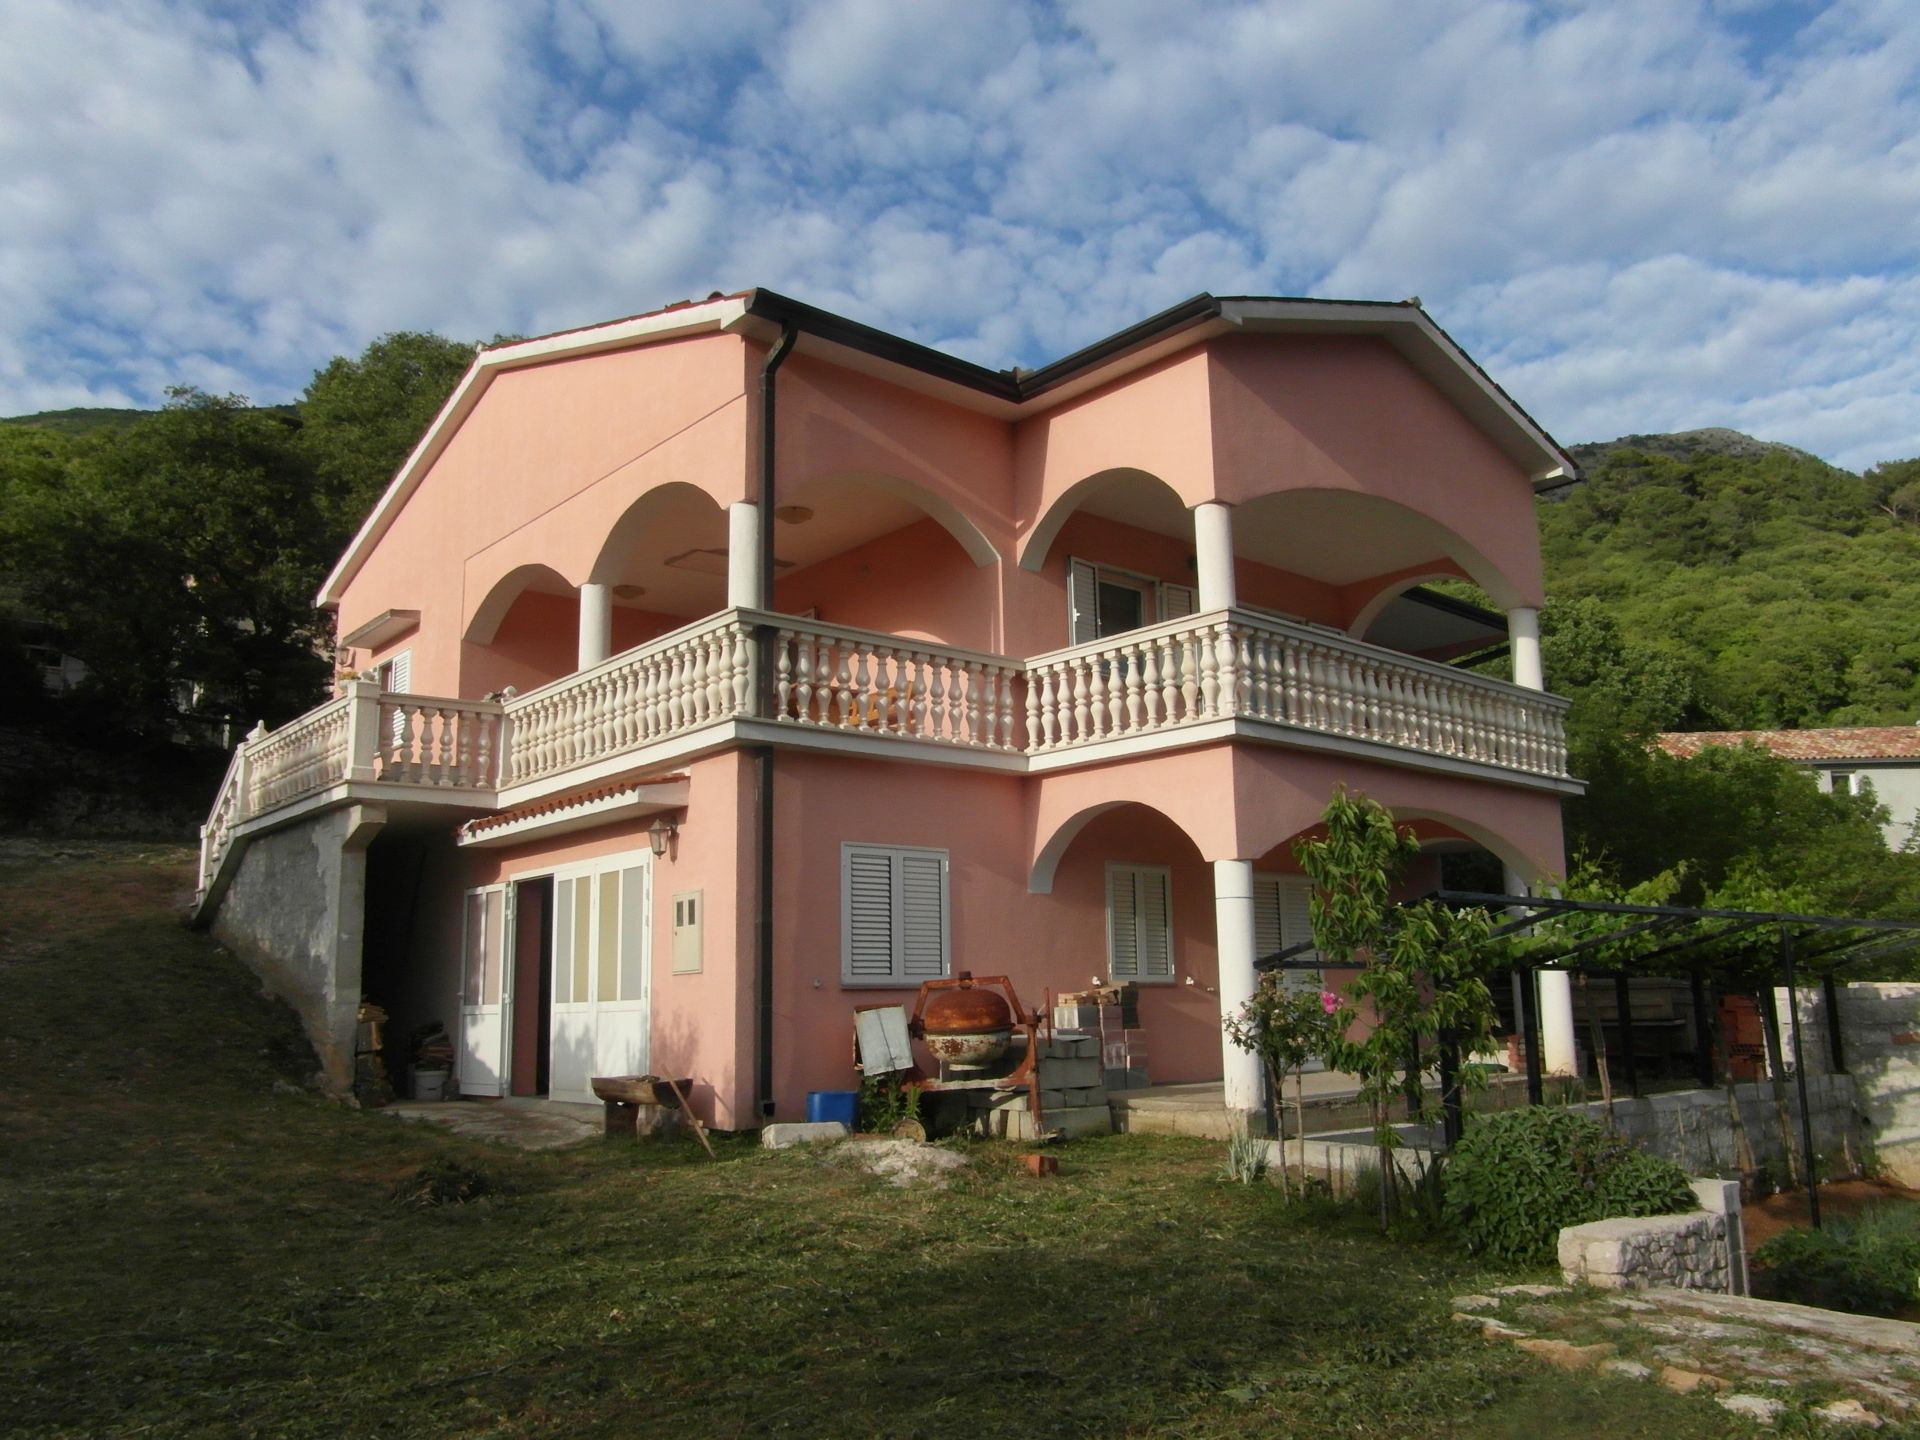 O-493 detached house only approx. 100 m from the sea with a view of a harbor